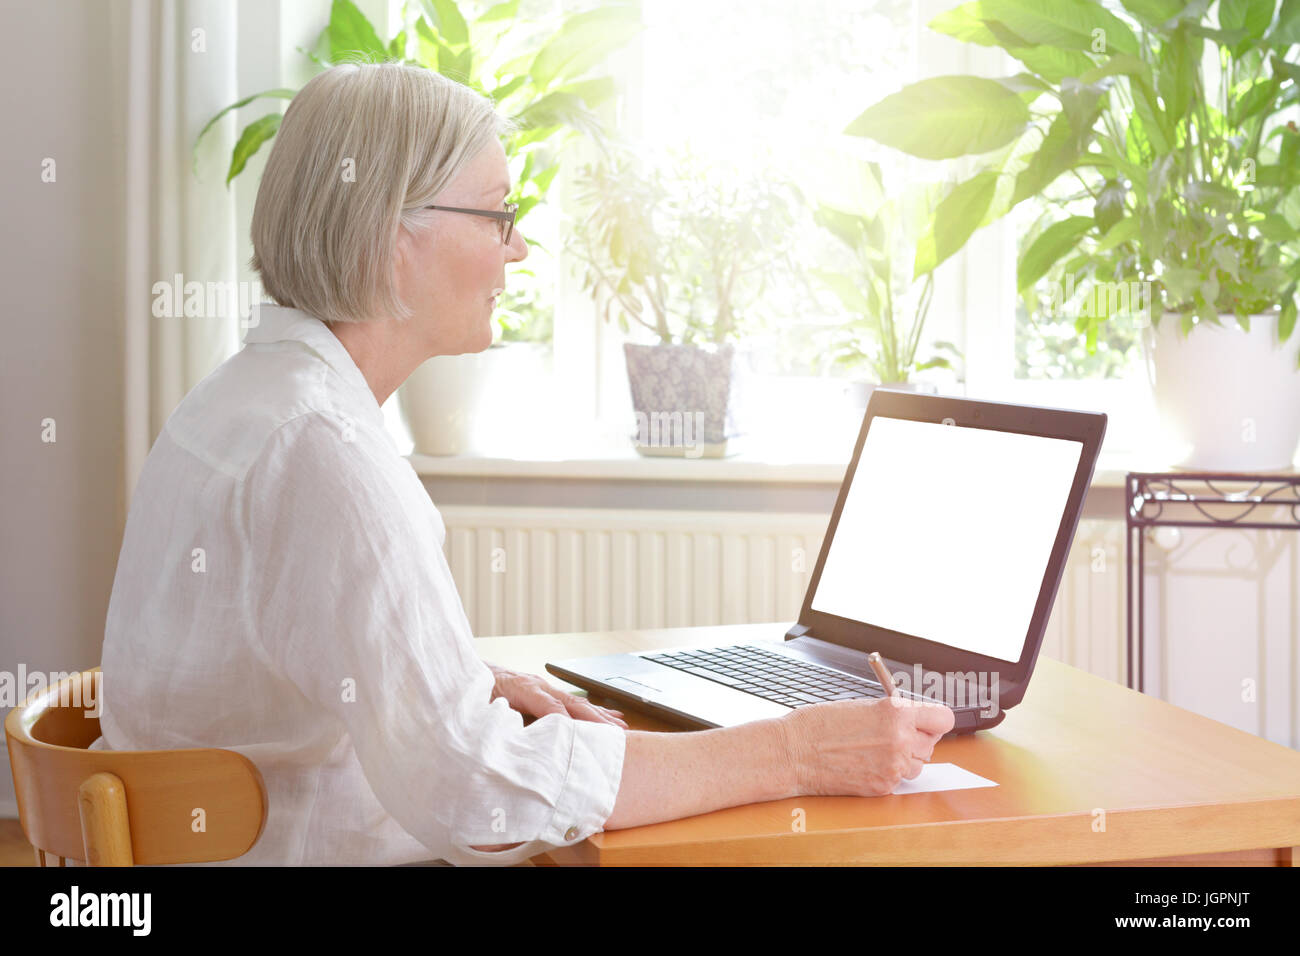 Senior woman at home in front of her laptop taking notes, online advice or e-learning concept template, blank screen, Stock Photo